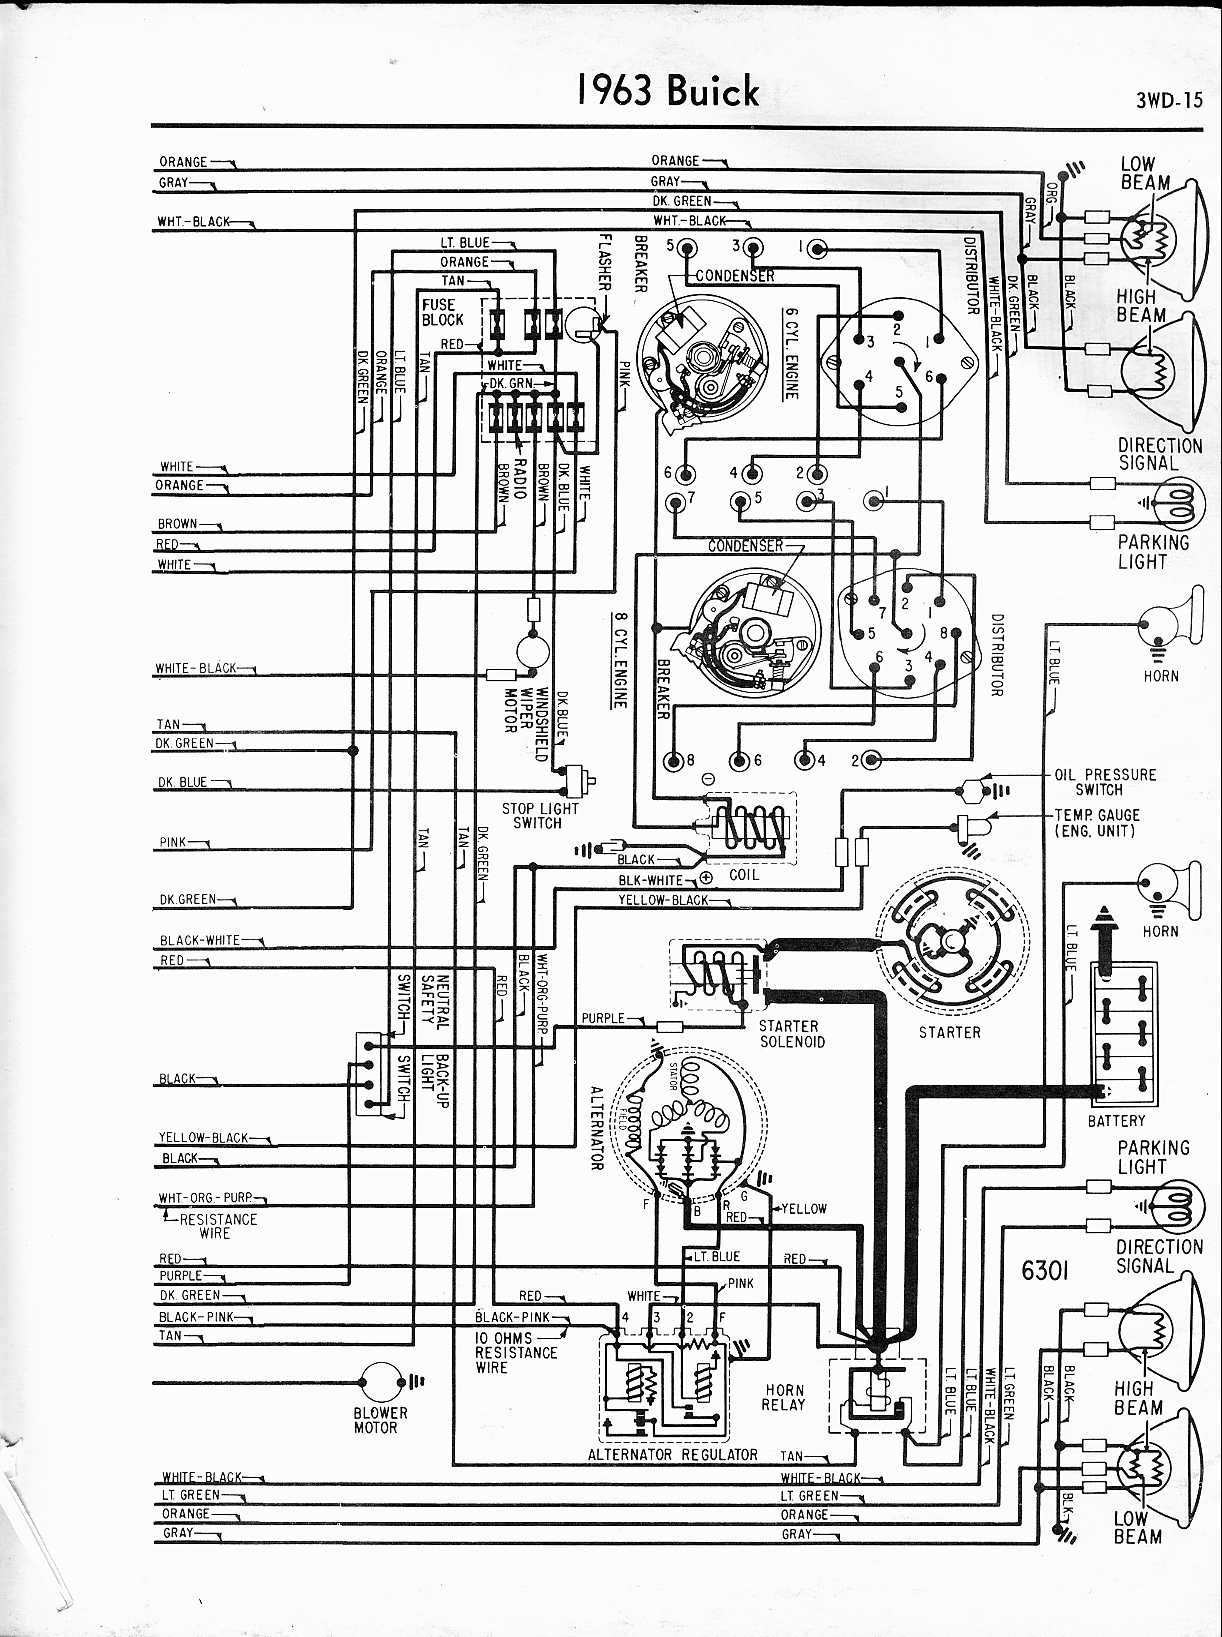 1972 Buick Riviera Wiring Diagram Free Download 1984 Diagrams 1957 1965